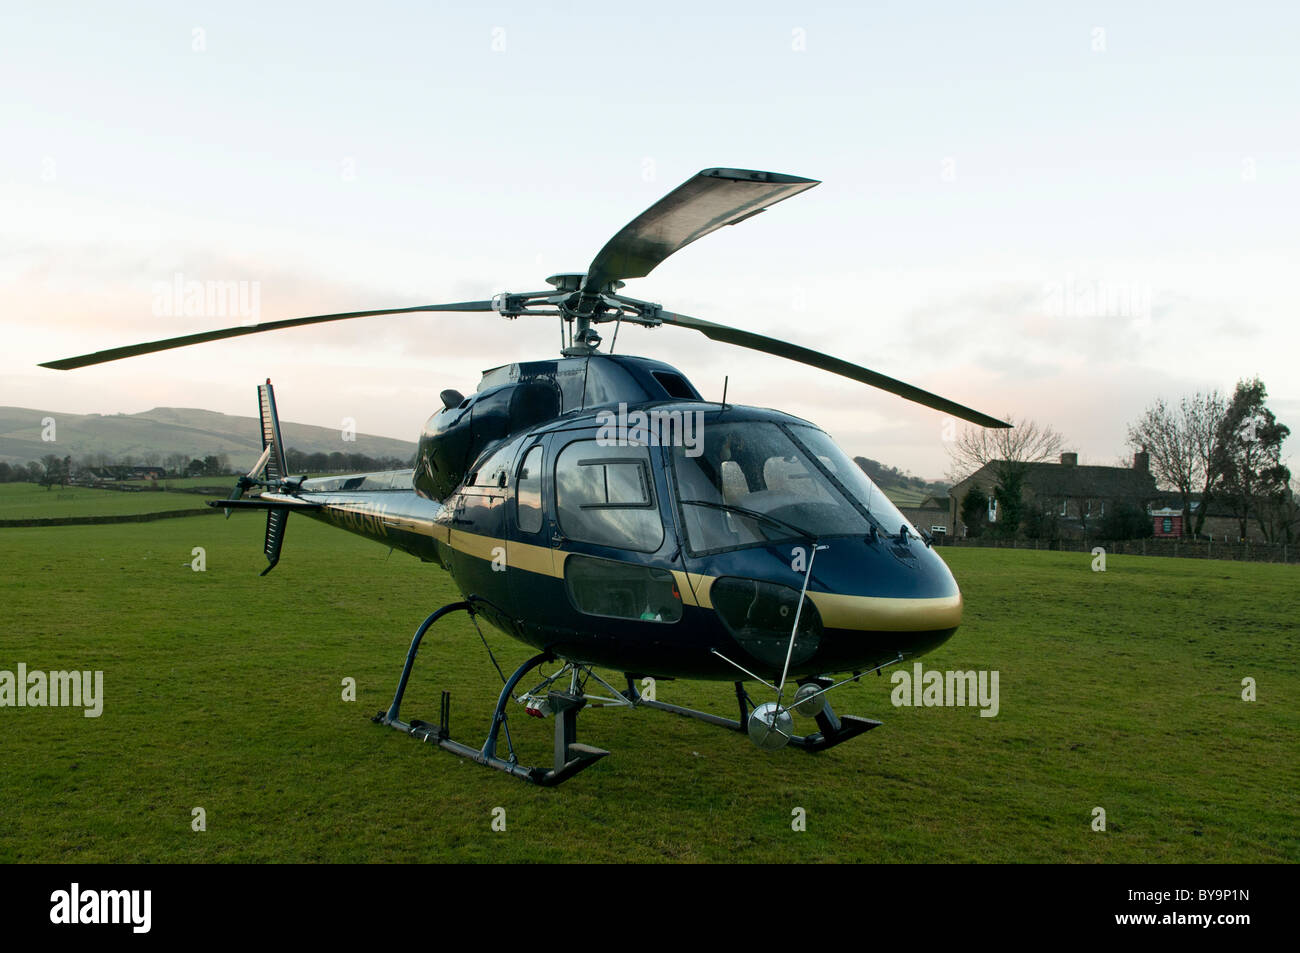 Aerospatiale AS 355F 2 Twin Squirrel Helicopter parked in the Penines whilst in a Heli-Lifting role - Stock Image